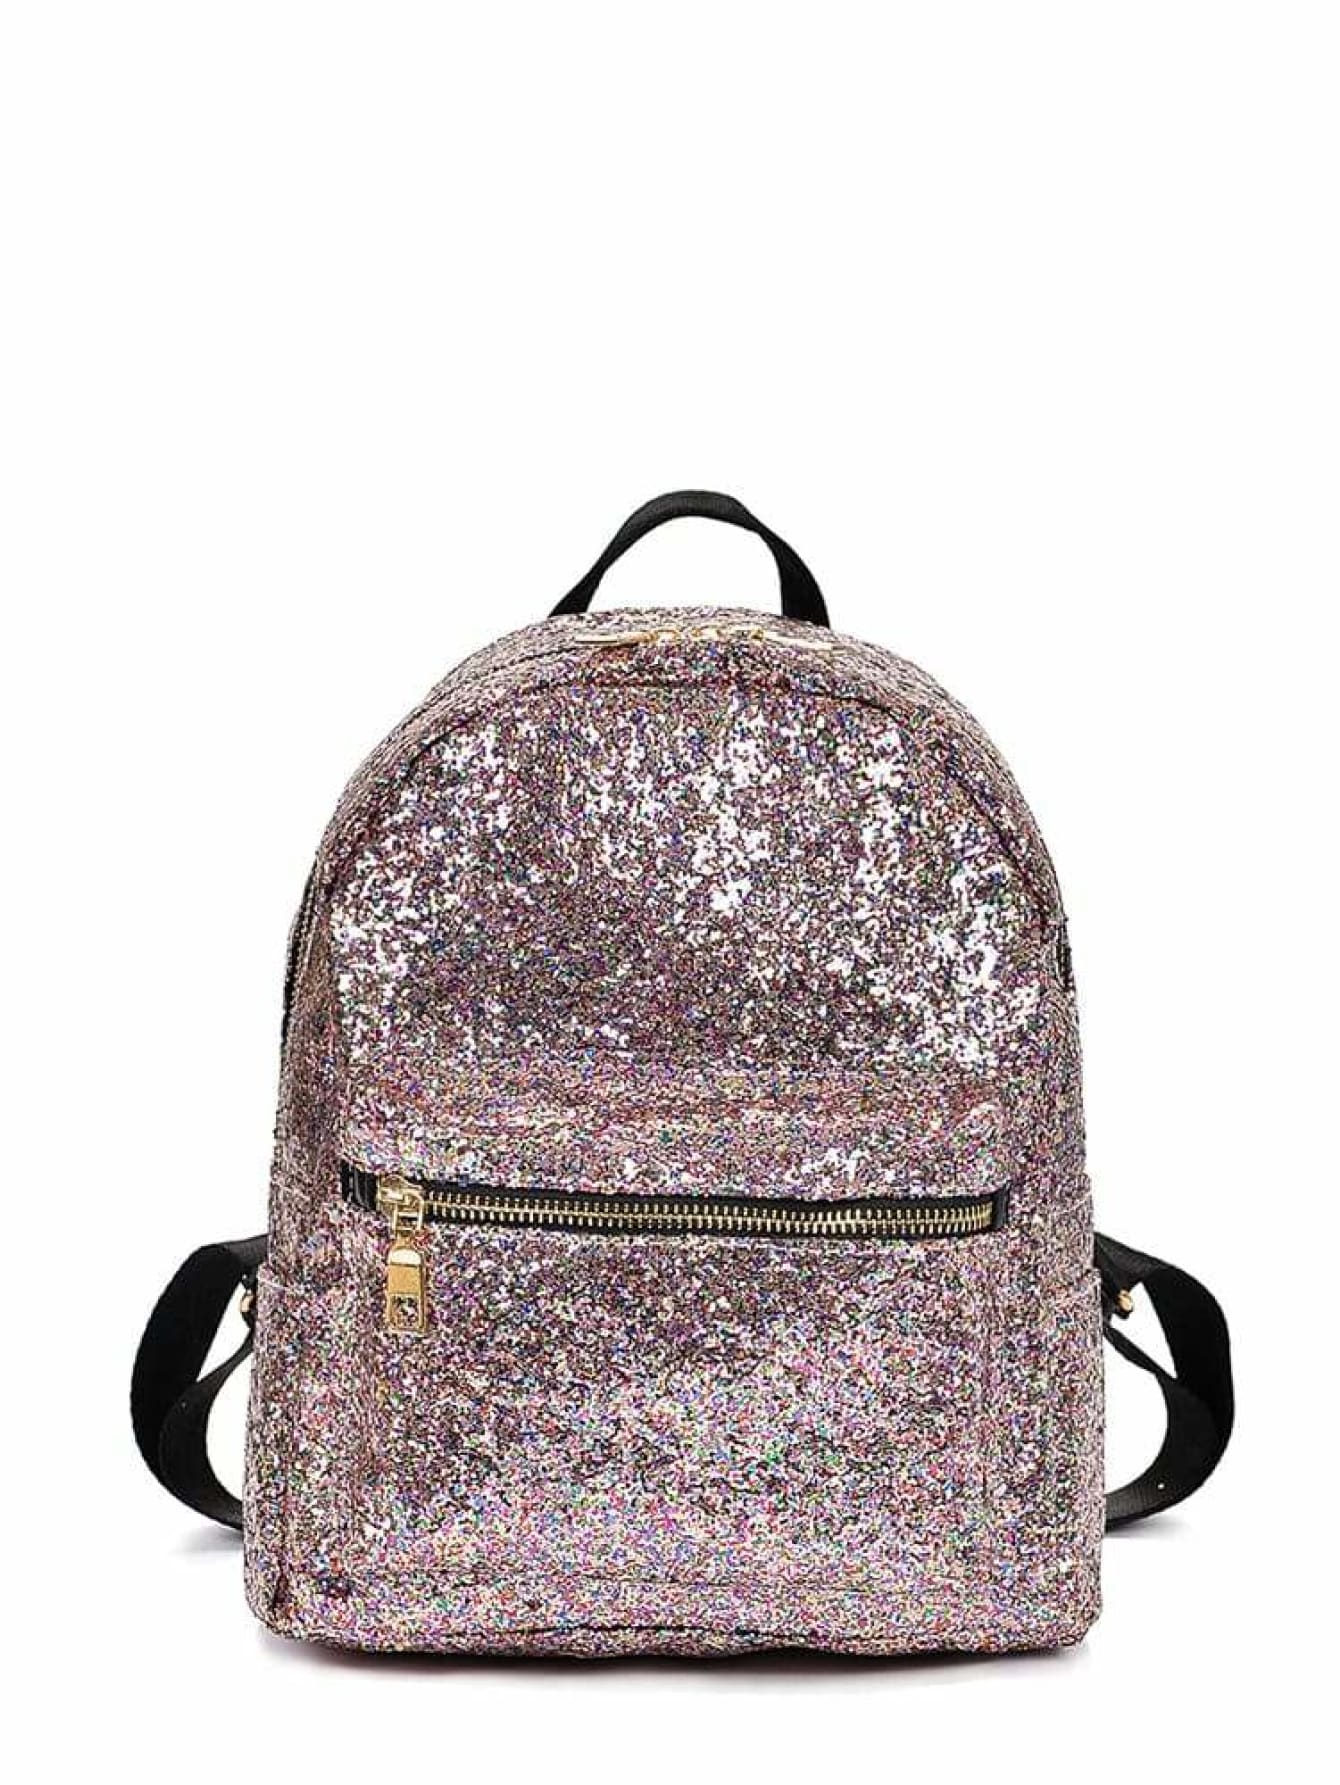 Random Zipper Glitter Design Backpack - Womens Bag